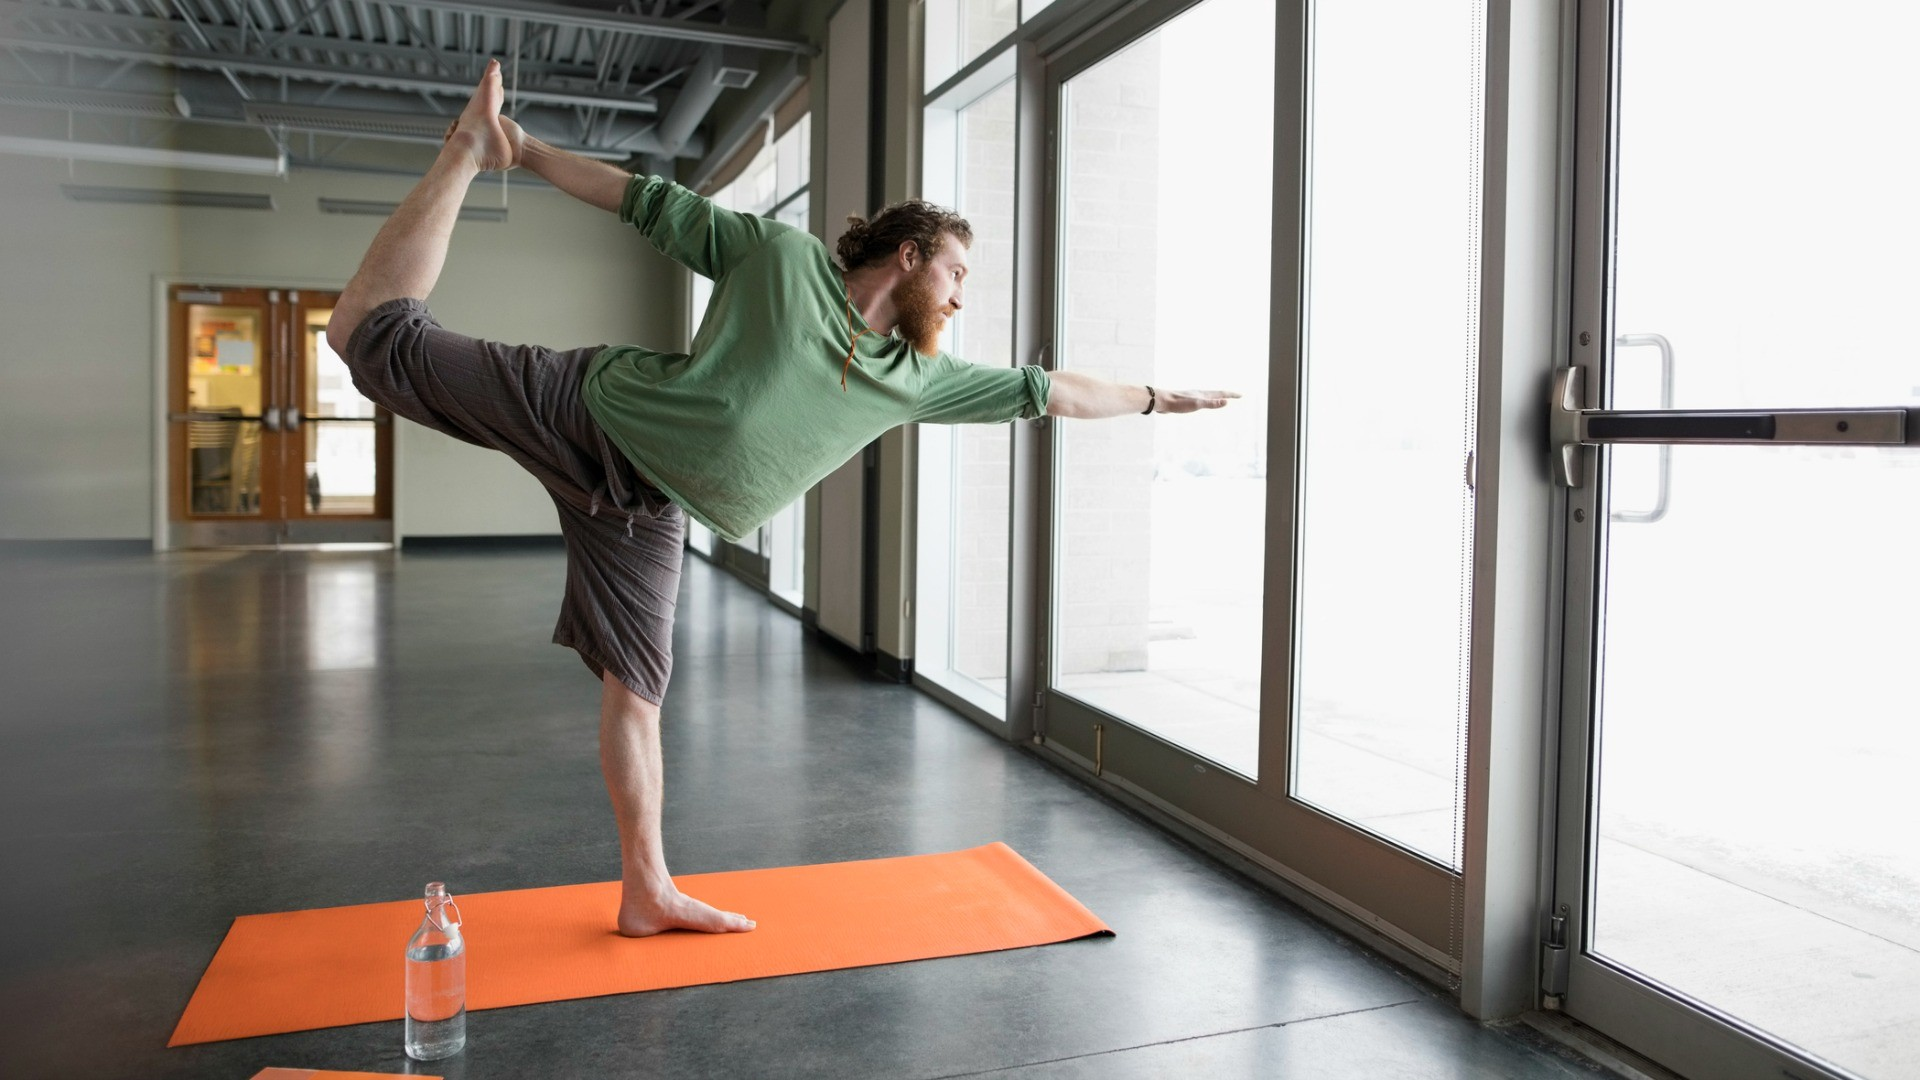 Yoga can help improve strength, flexibility and is good for injury prevention